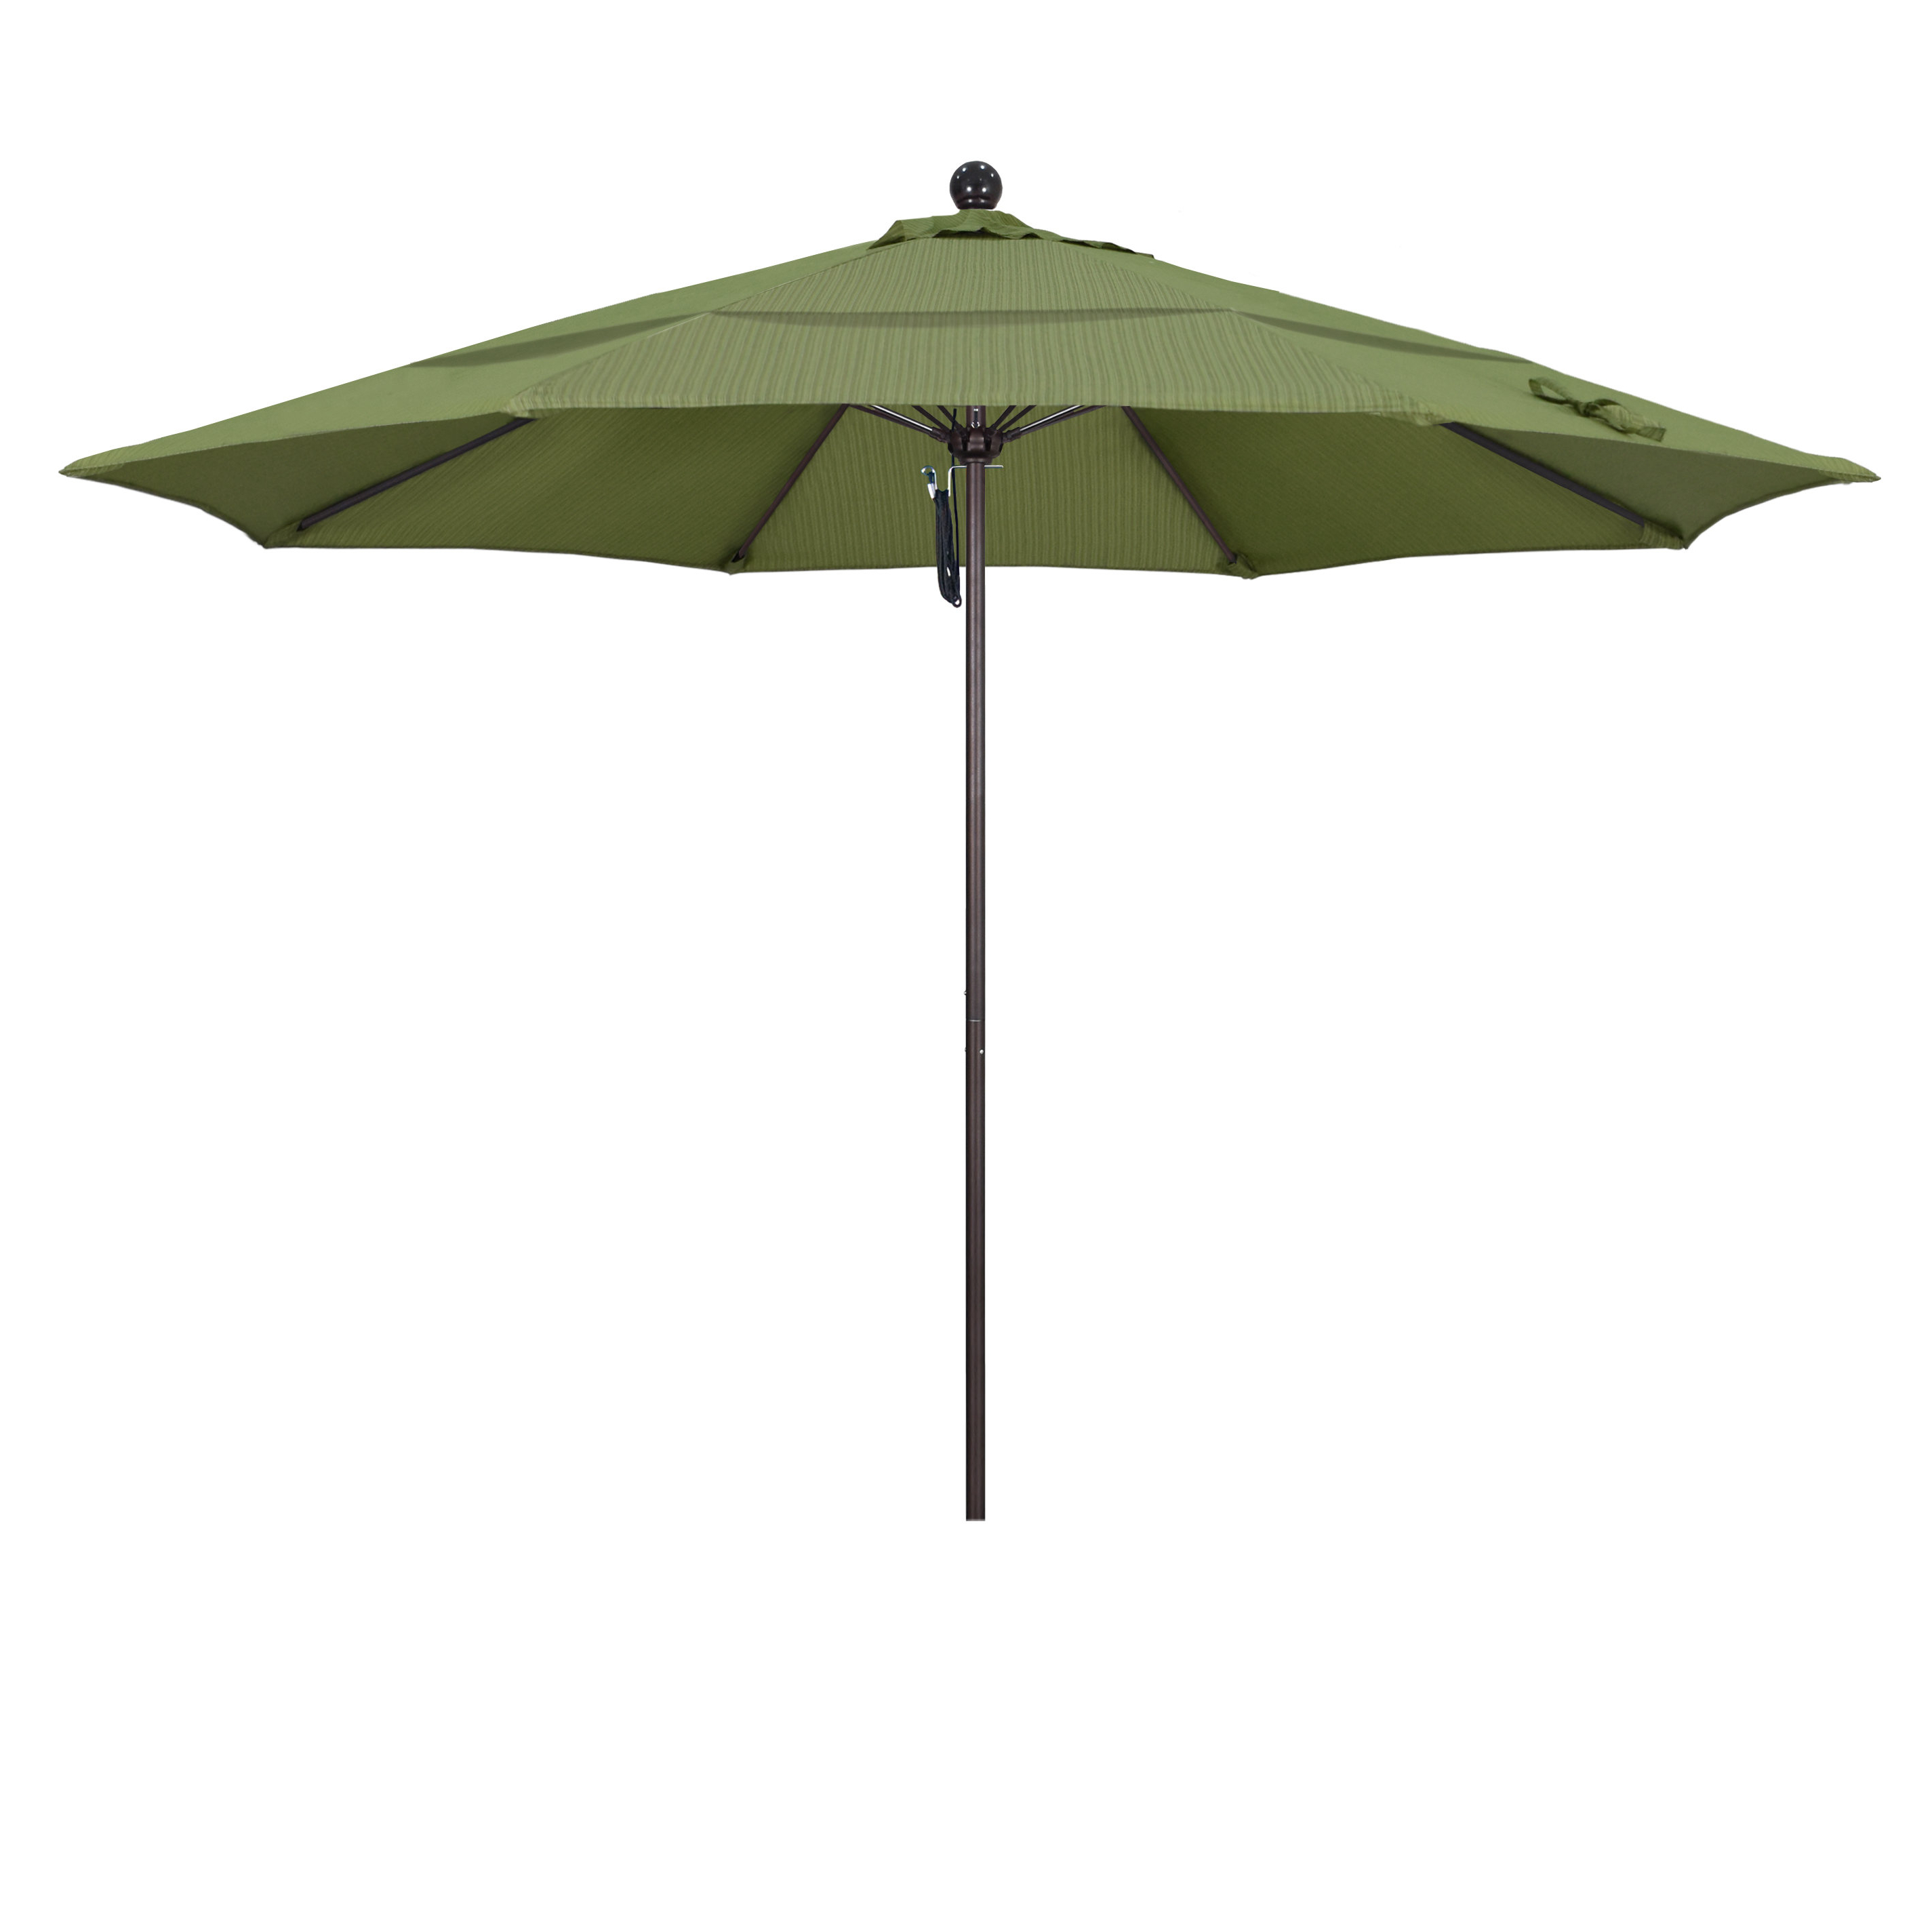 Mucci Madilyn Market Sunbrella Umbrellas Throughout Most Up To Date Benson 11' Market Umbrella (View 5 of 20)